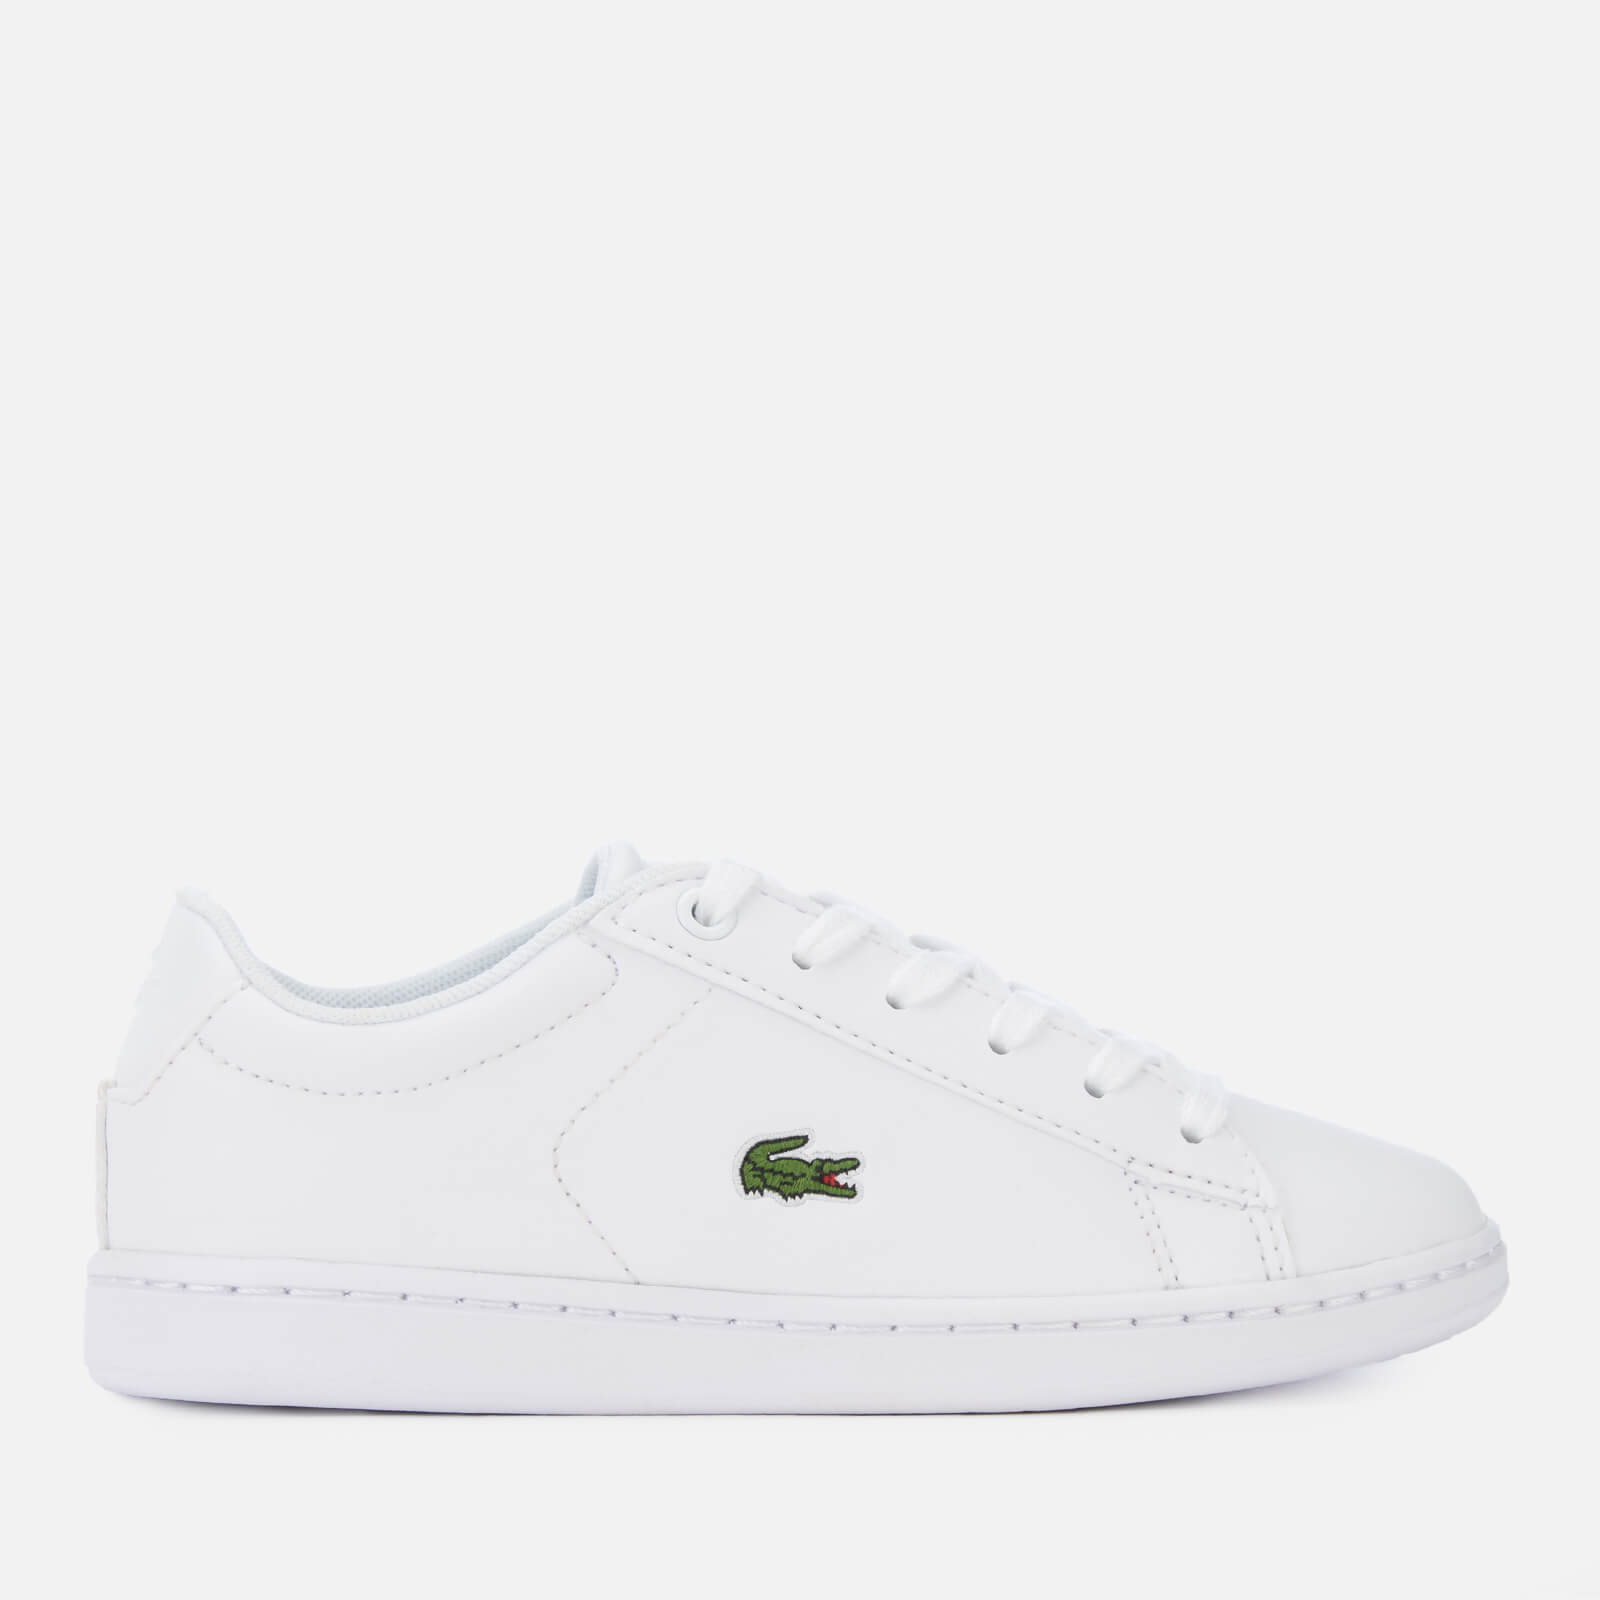 746d08902 Lacoste Kids  Carnaby Evo 119 7 Low Top Trainers - White White ...